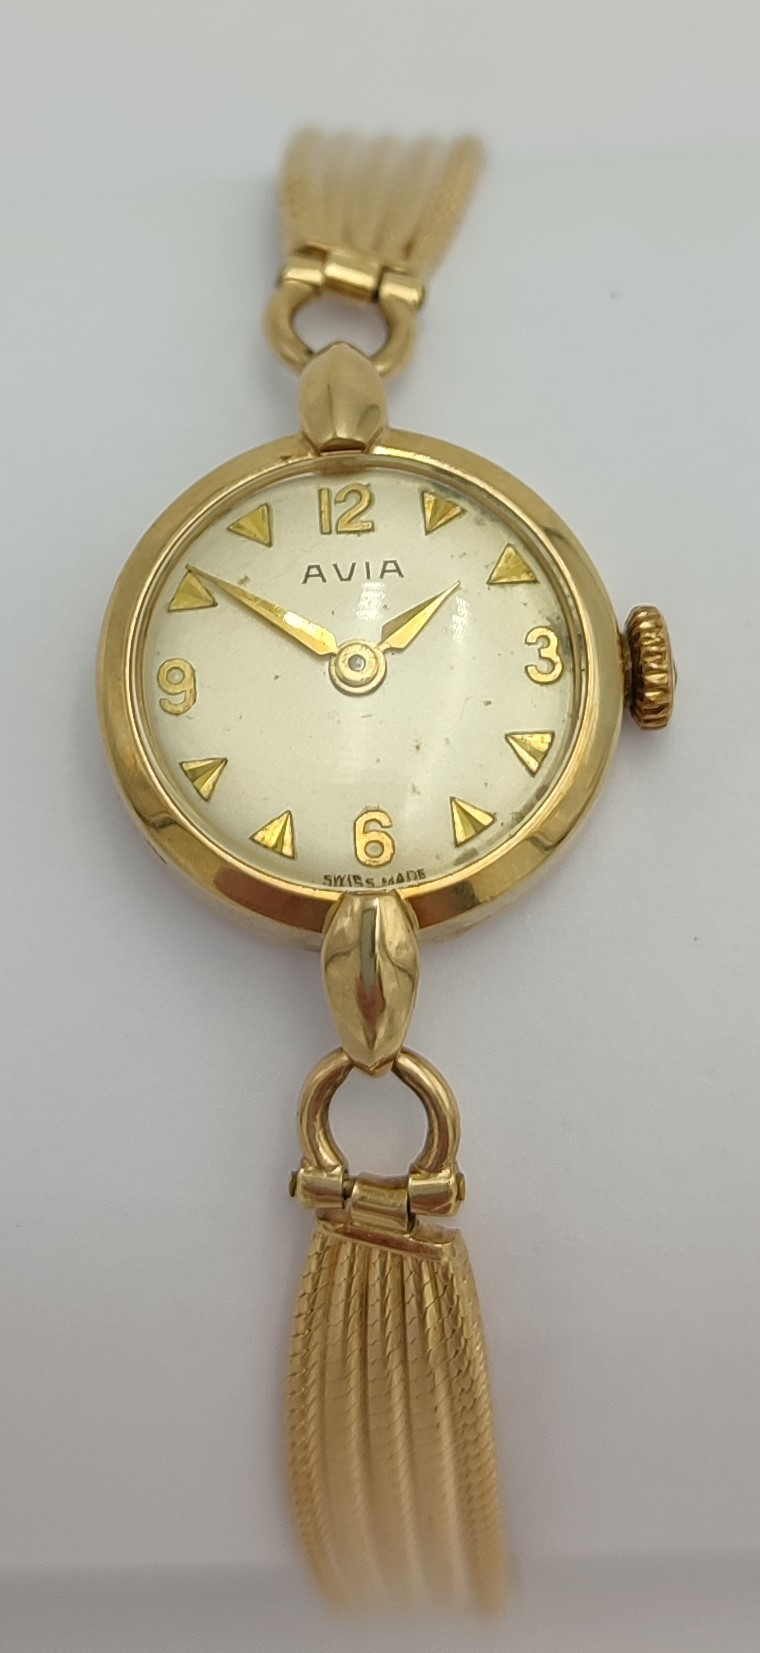 LADIES AVIA 9CT GOLD BRACELT WRIST WATCH the champagne dial with Arabic numerals and pyramid hour - Image 2 of 4